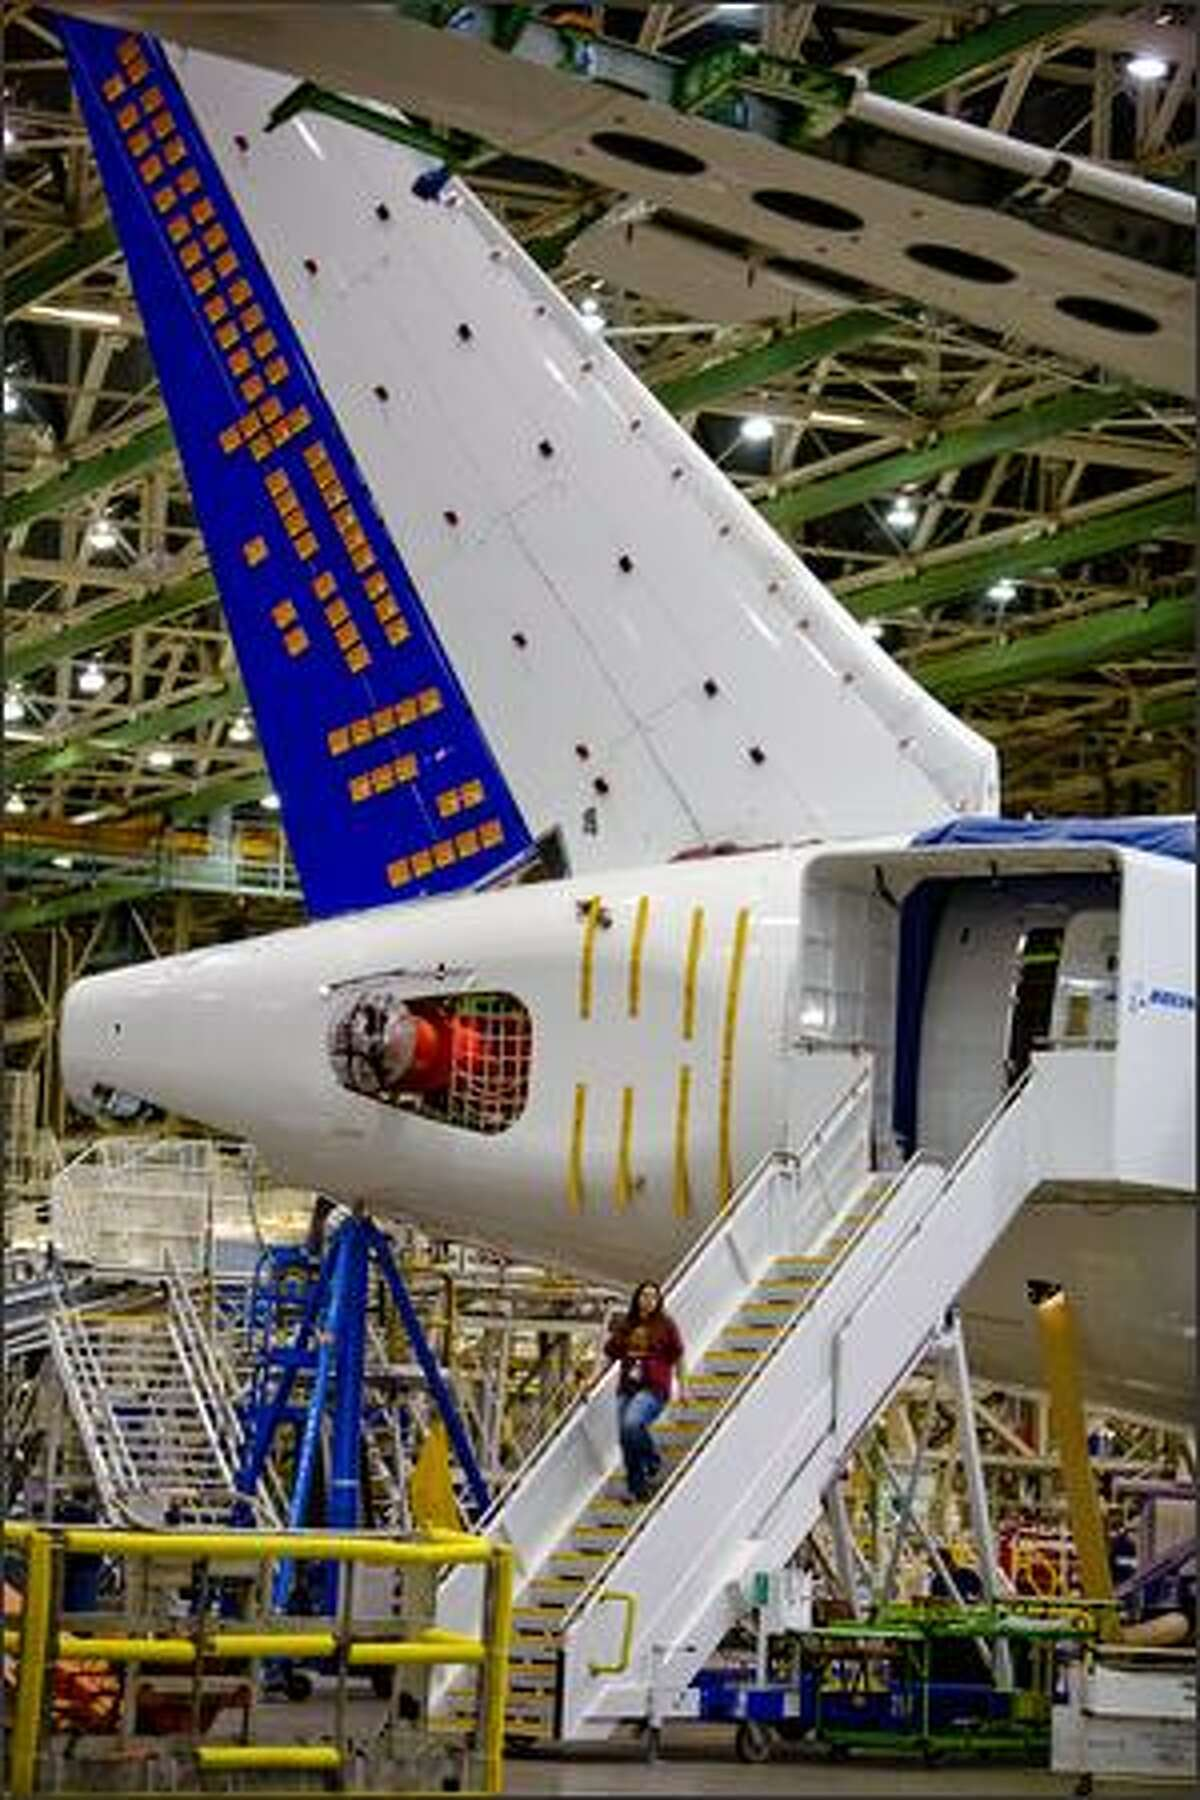 The 787 fatigue test airplane is shown.